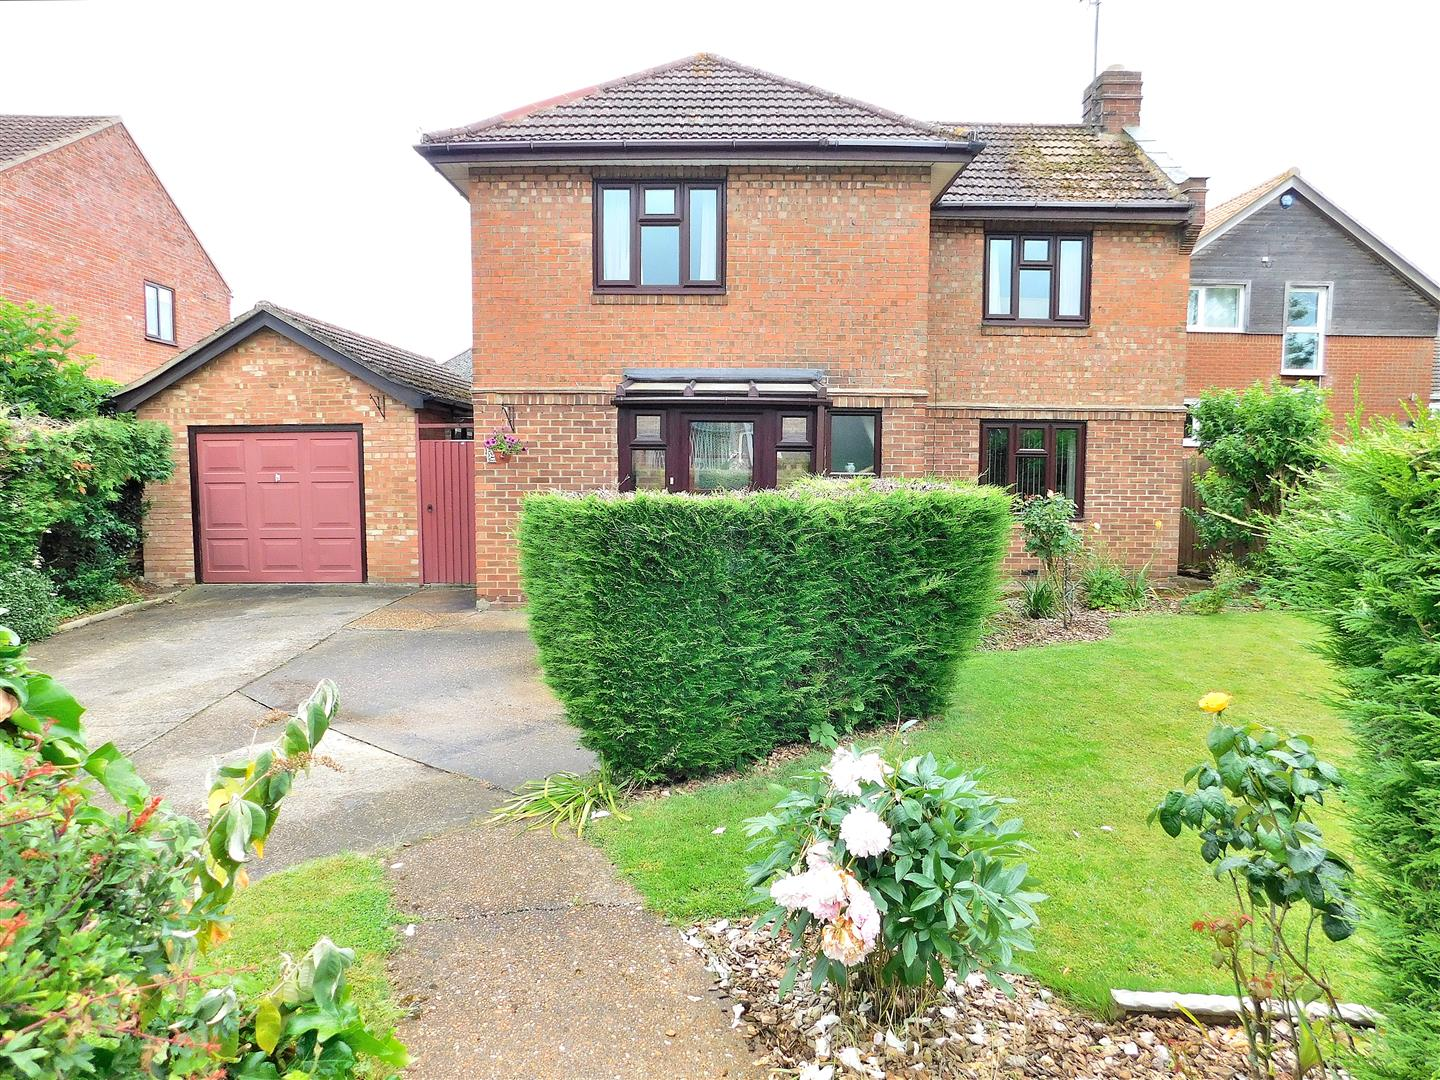 3 bed detached house for sale in Foxs Lane, King's Lynn, PE34